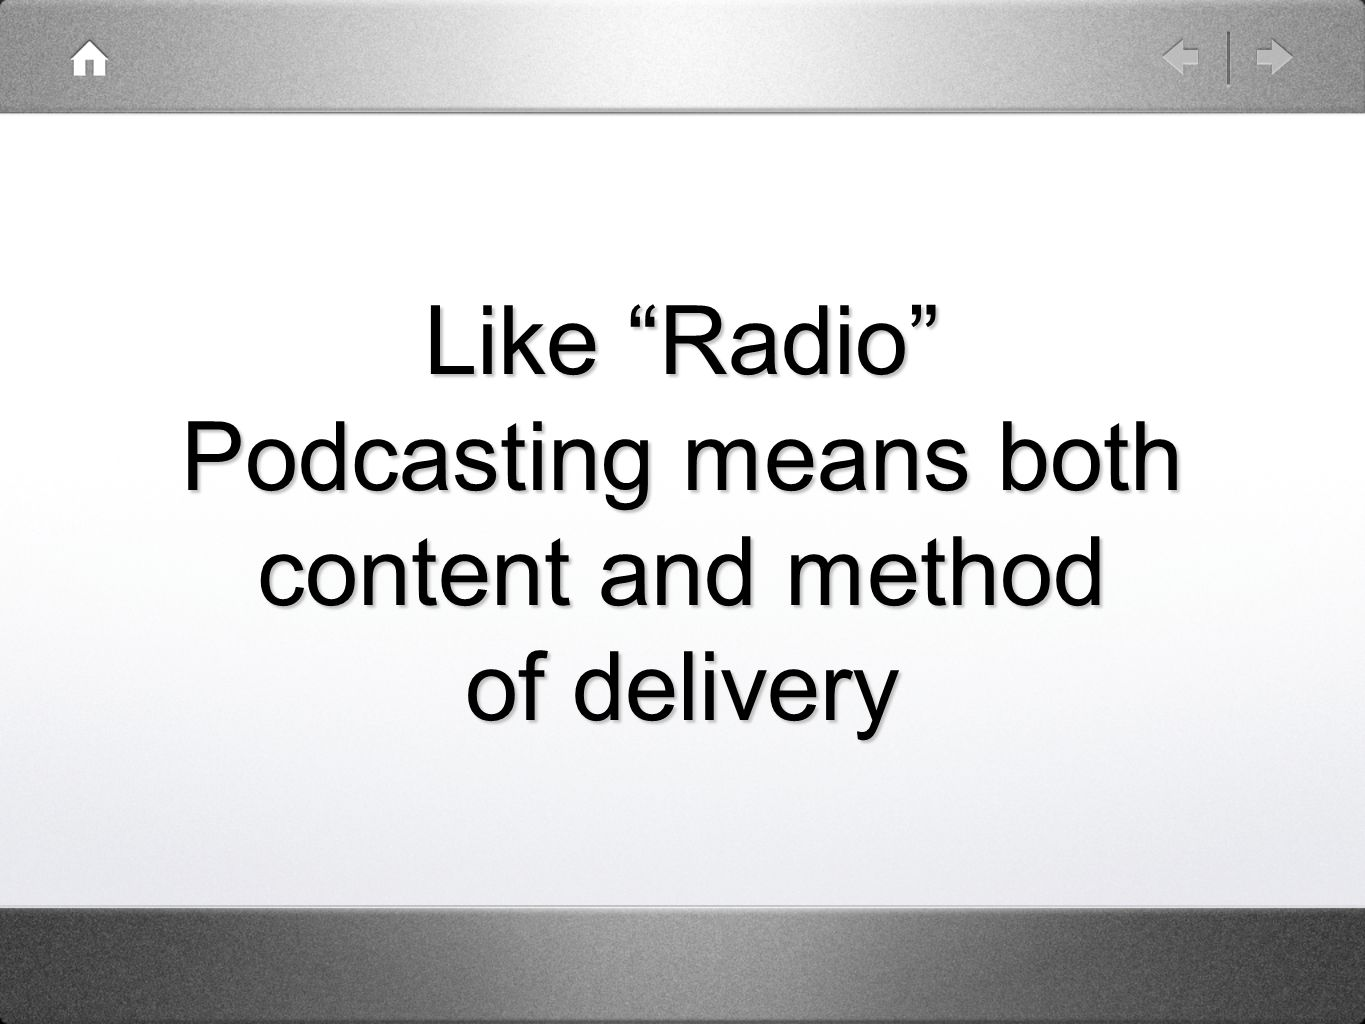 Like Radio Podcasting means both content and method of delivery